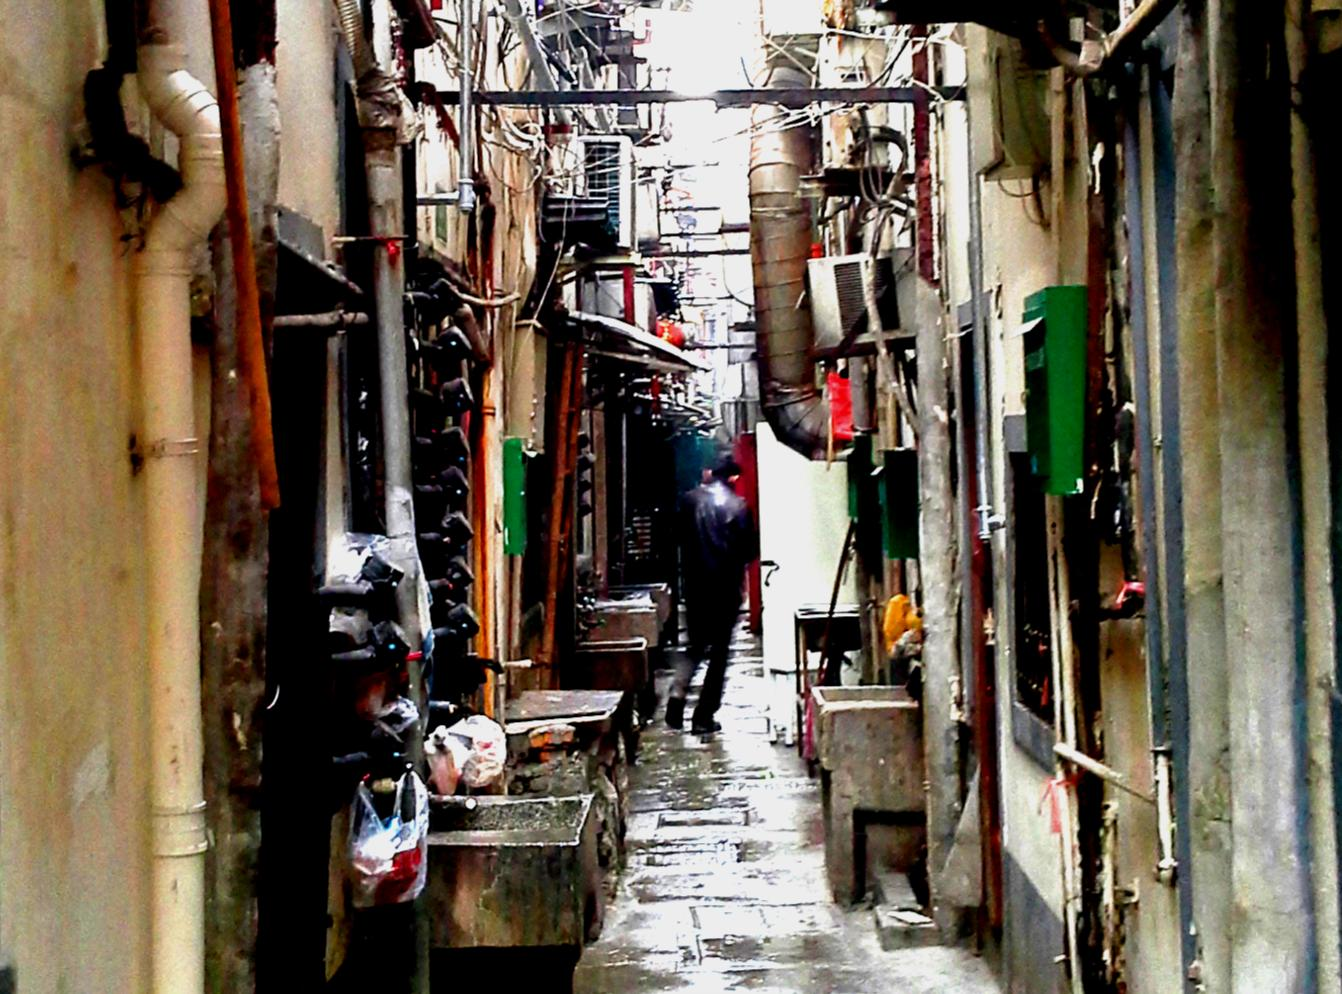 Buffered from the street noise, you can find some relative quiet down Shanghai's traditional lilong.   隔离着街路的吵闹,随着上海传统的里弄,您也可以在都市里寻回些珍贵的宁静。